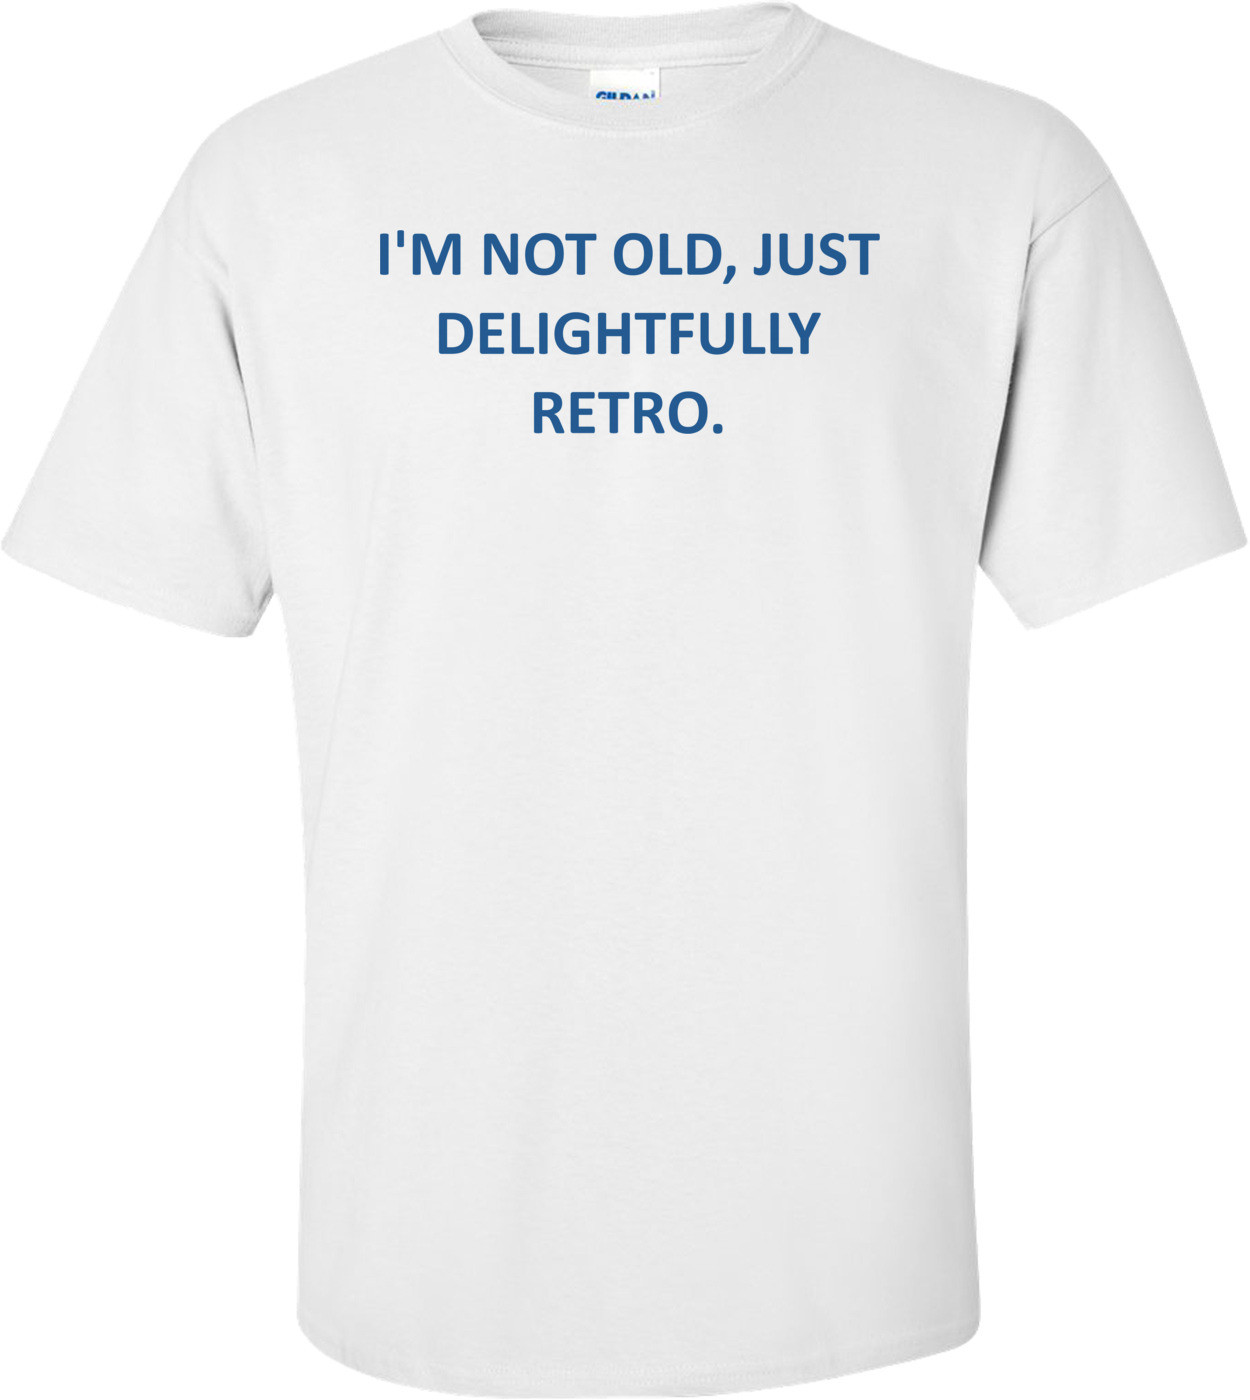 I'M NOT OLD, JUST DELIGHTFULLY RETRO. Shirt